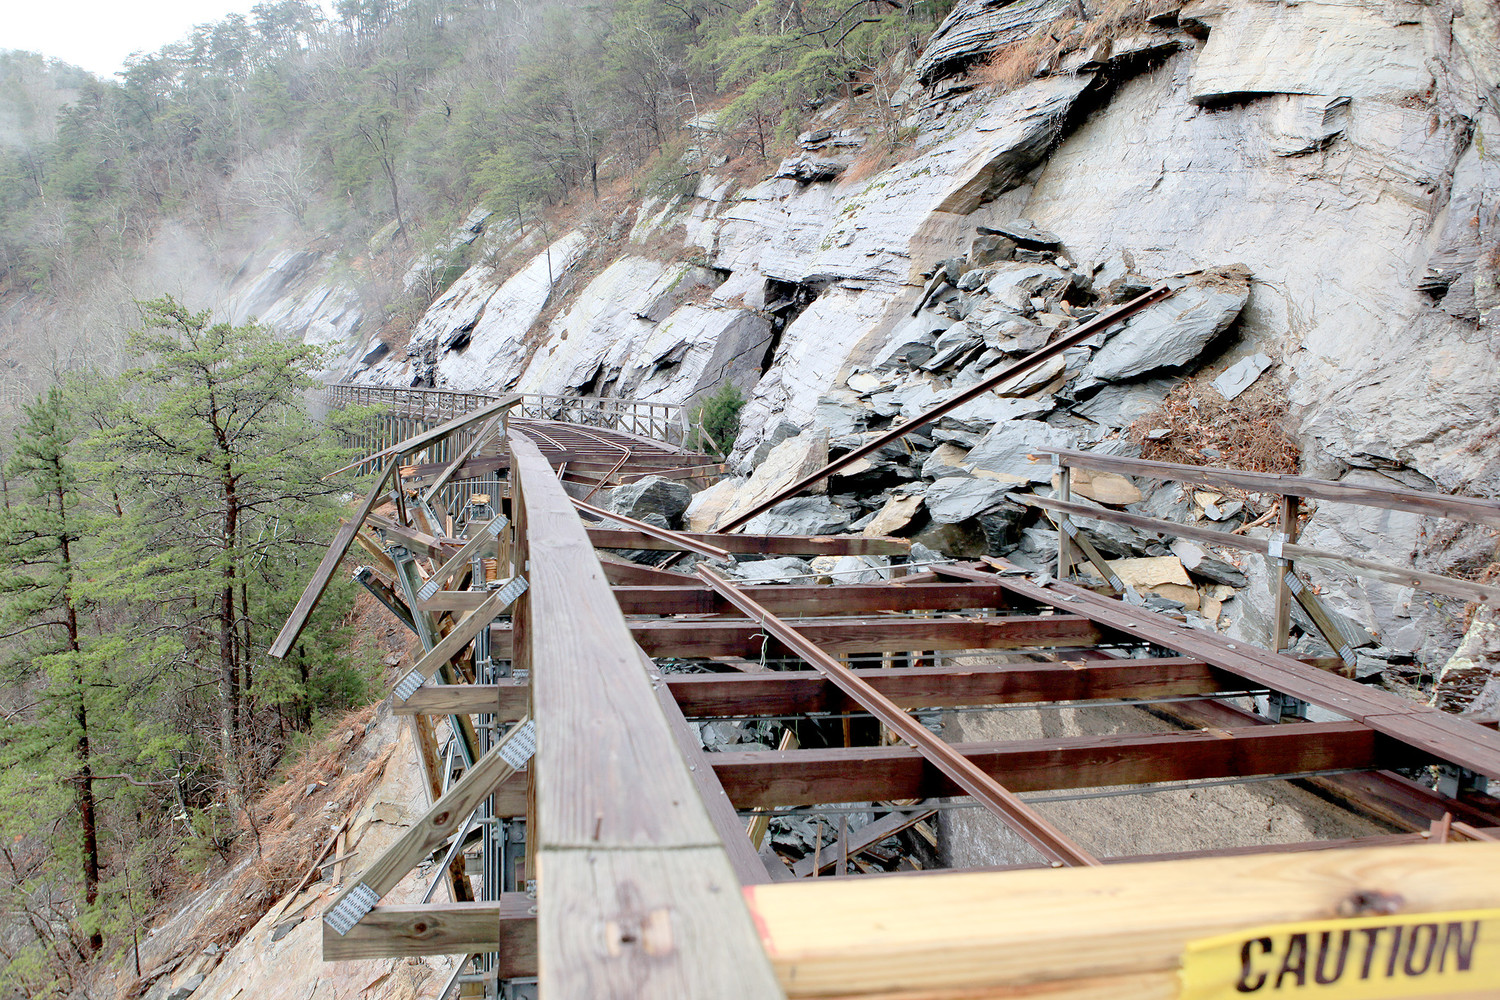 THE DAMAGE to the Ocoee Flume caused by a rockslide on Nov. 8, 2017, will cost an estimated $1.4 million to repair. In this photo, rock debris is visible, as is splintered wood and twisted metal.